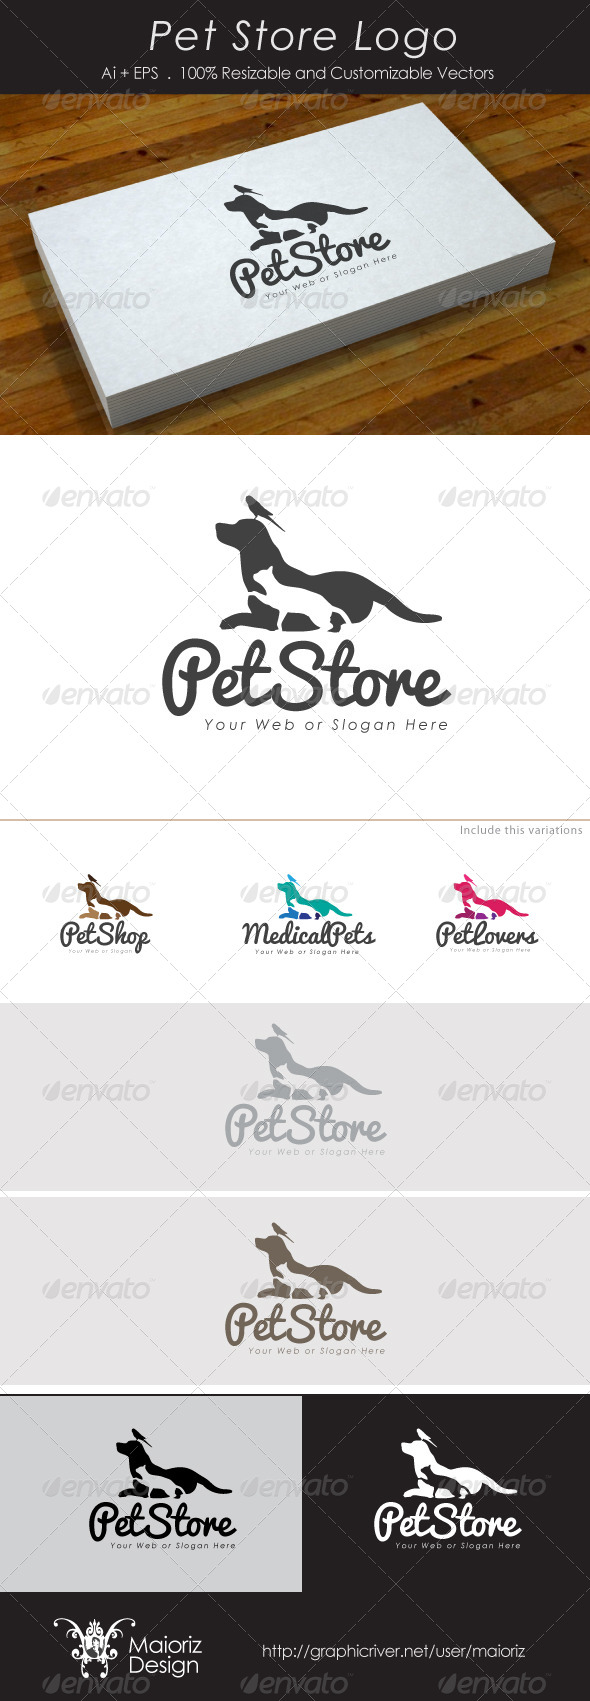 Pet Store Logo - Animals Logo Templates